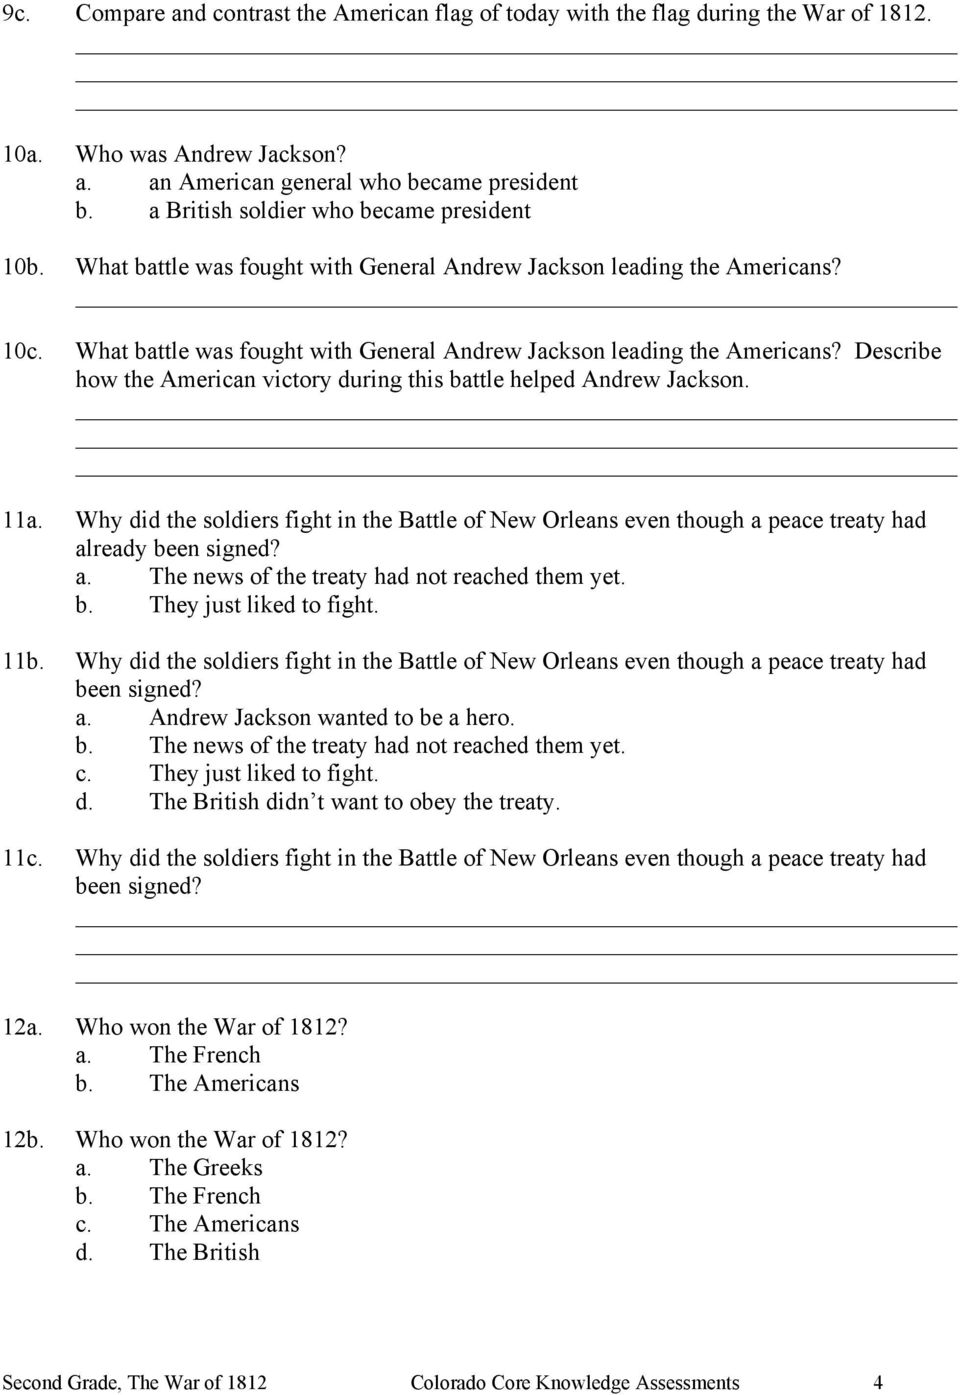 hight resolution of Second Grade The War of 1812 Assessment - PDF Free Download